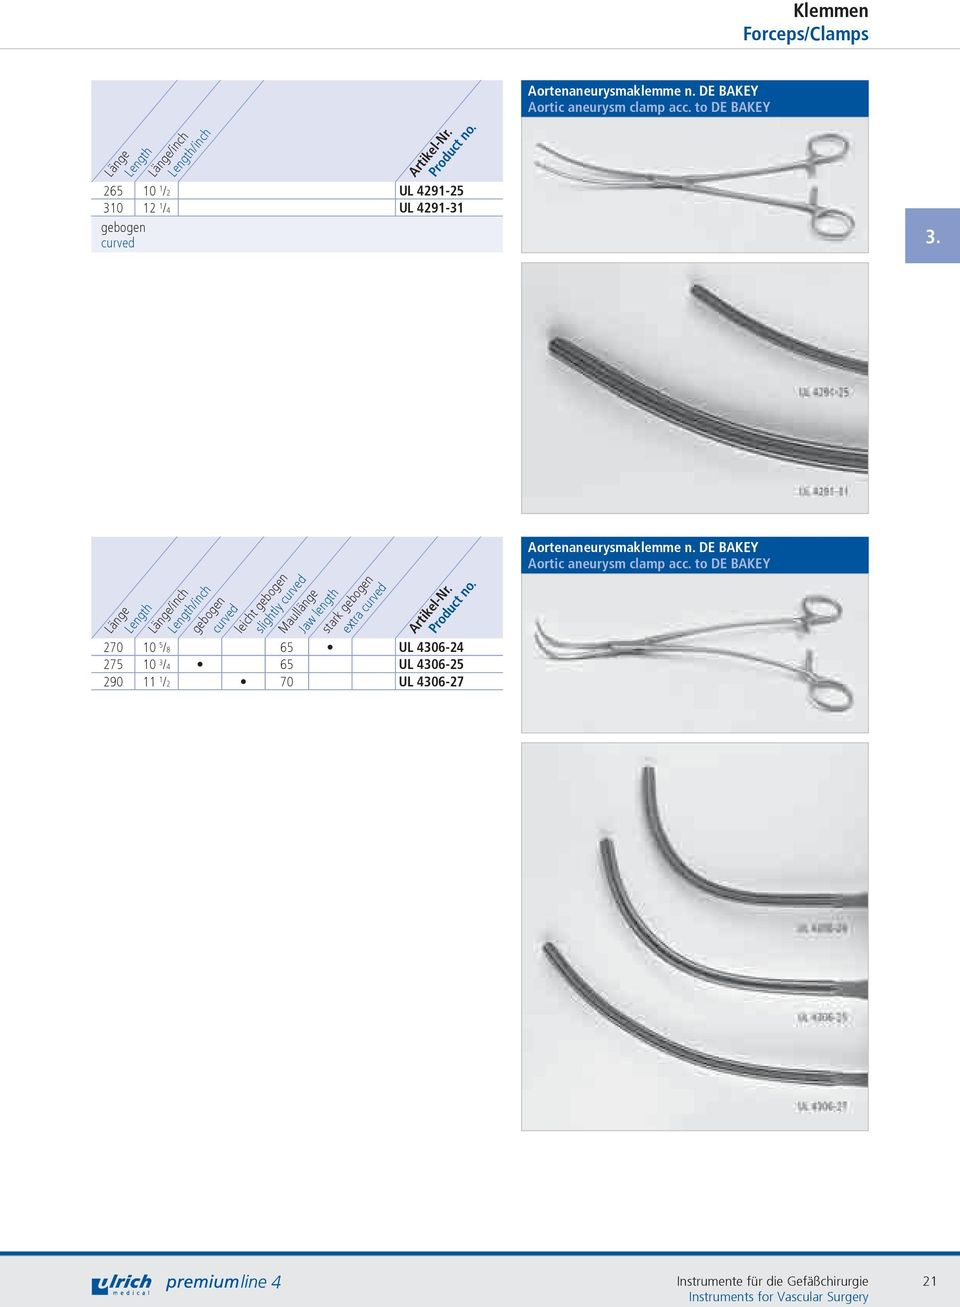 /inch /inch gebogen curved leicht gebogen slightly curved Maullänge Jaw length stark gebogen extra curved 270 10 5